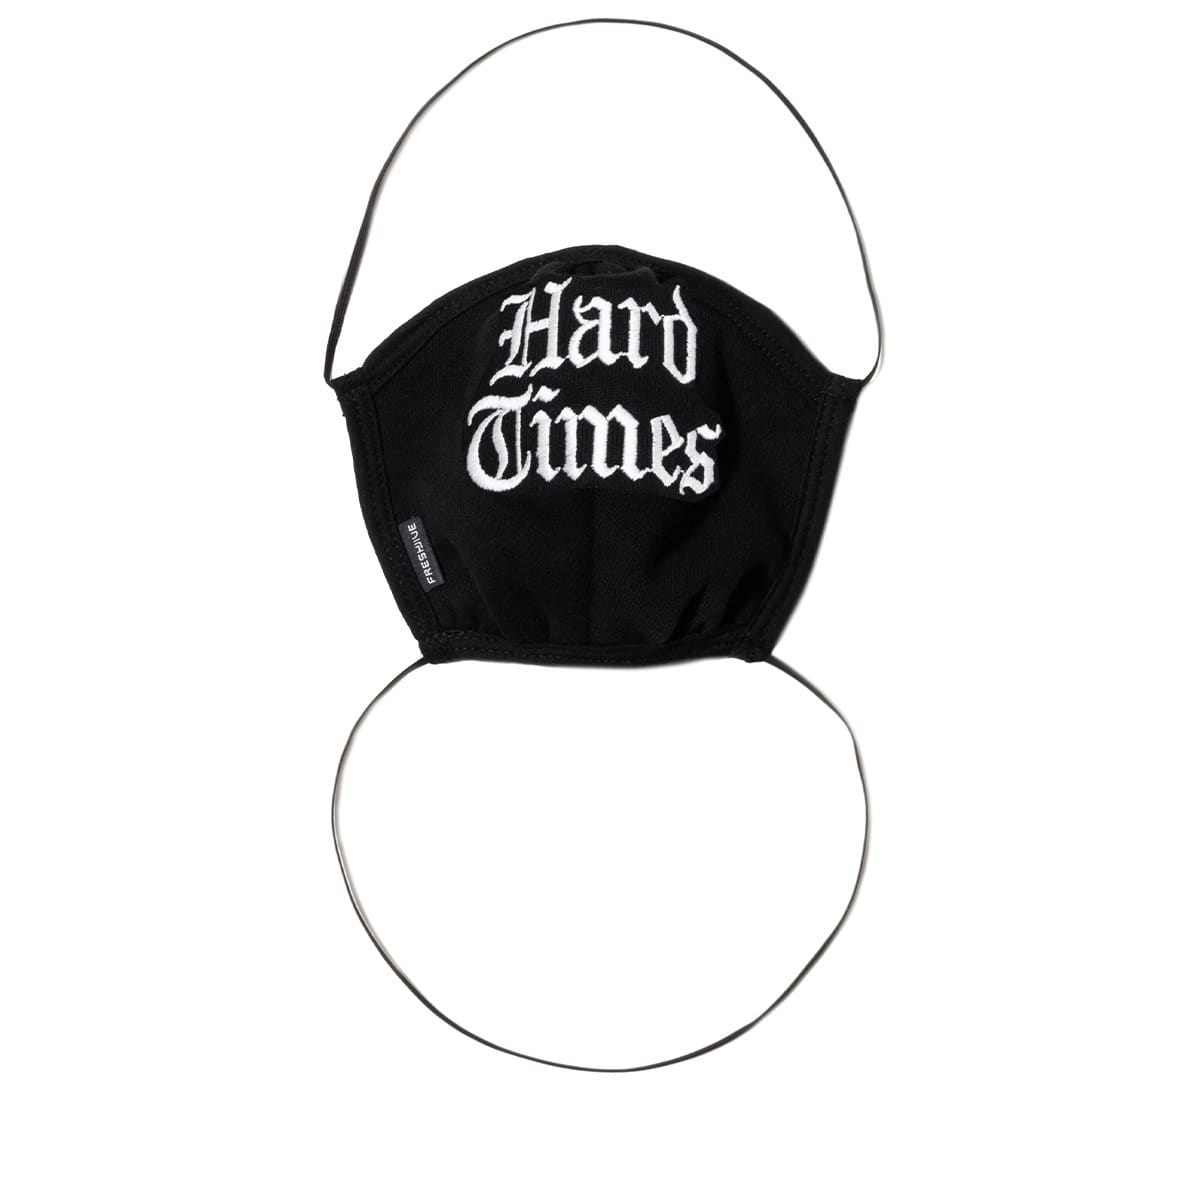 Freshjive Bags & Accessories BLACK / O/S HARD TIMES FACE MASK